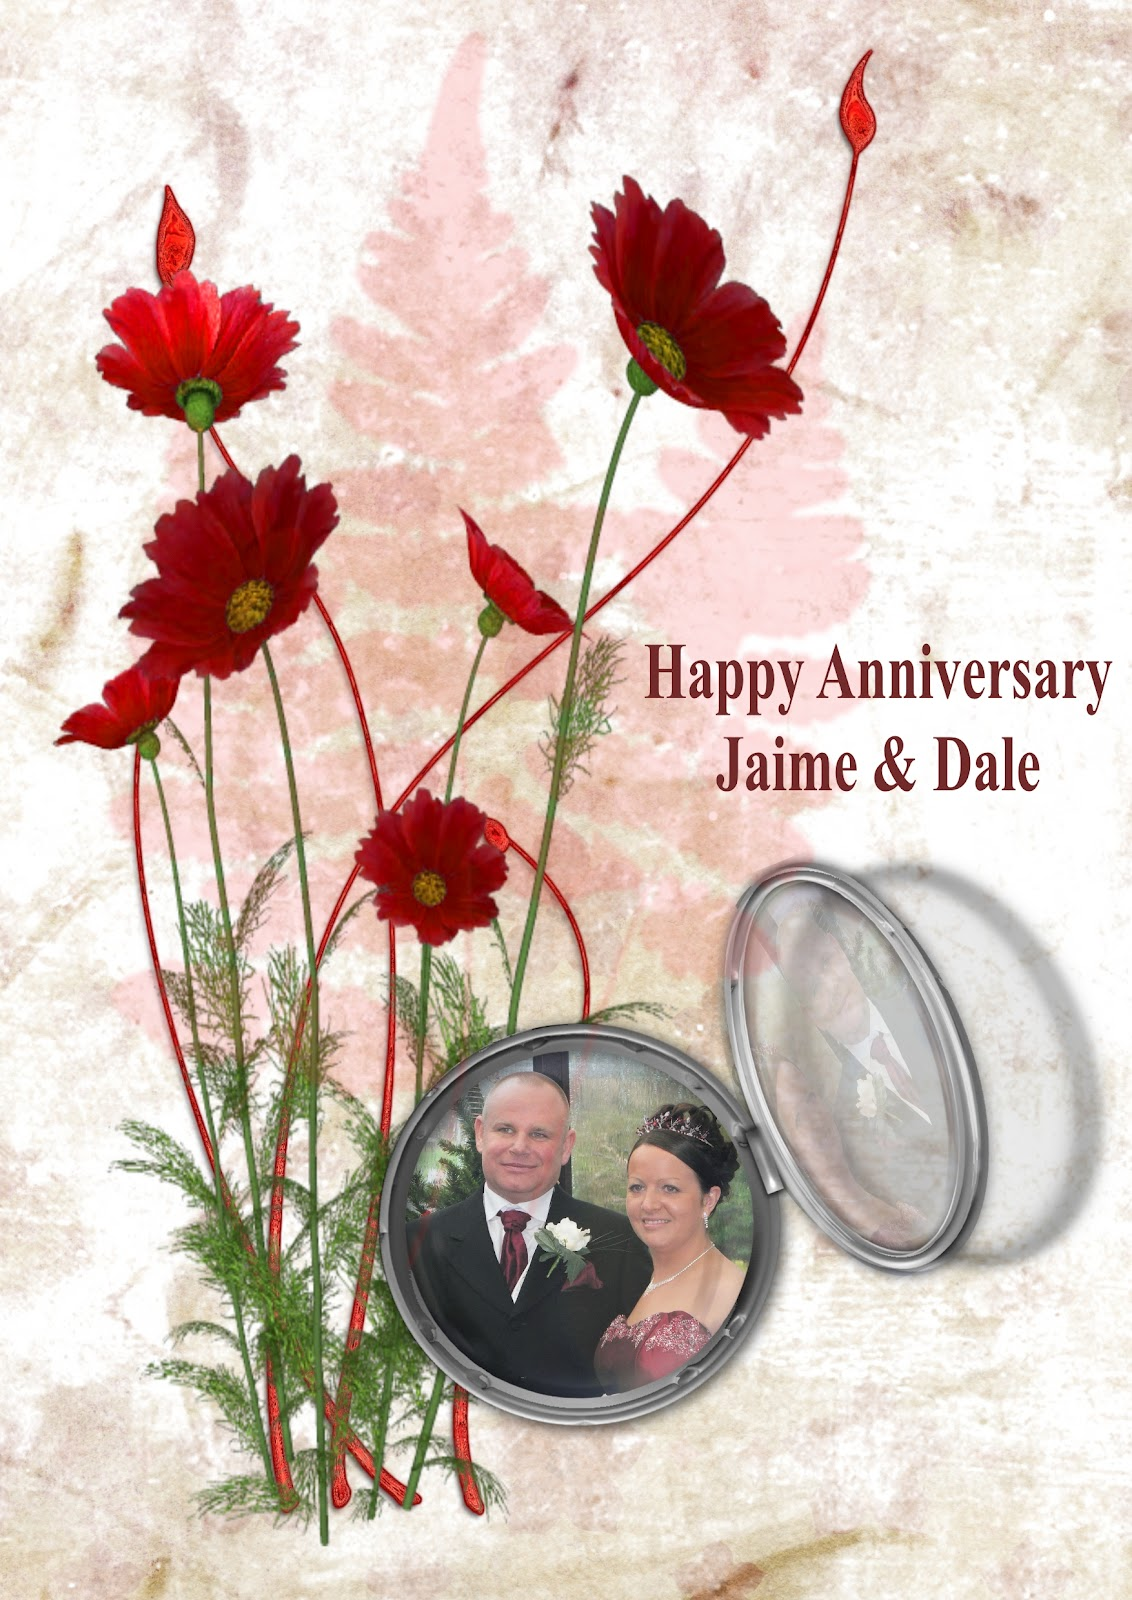 Wedding Anniversary Gift For Daughter : suegp.blog: Anniversary Card for my Daughter & Son in law